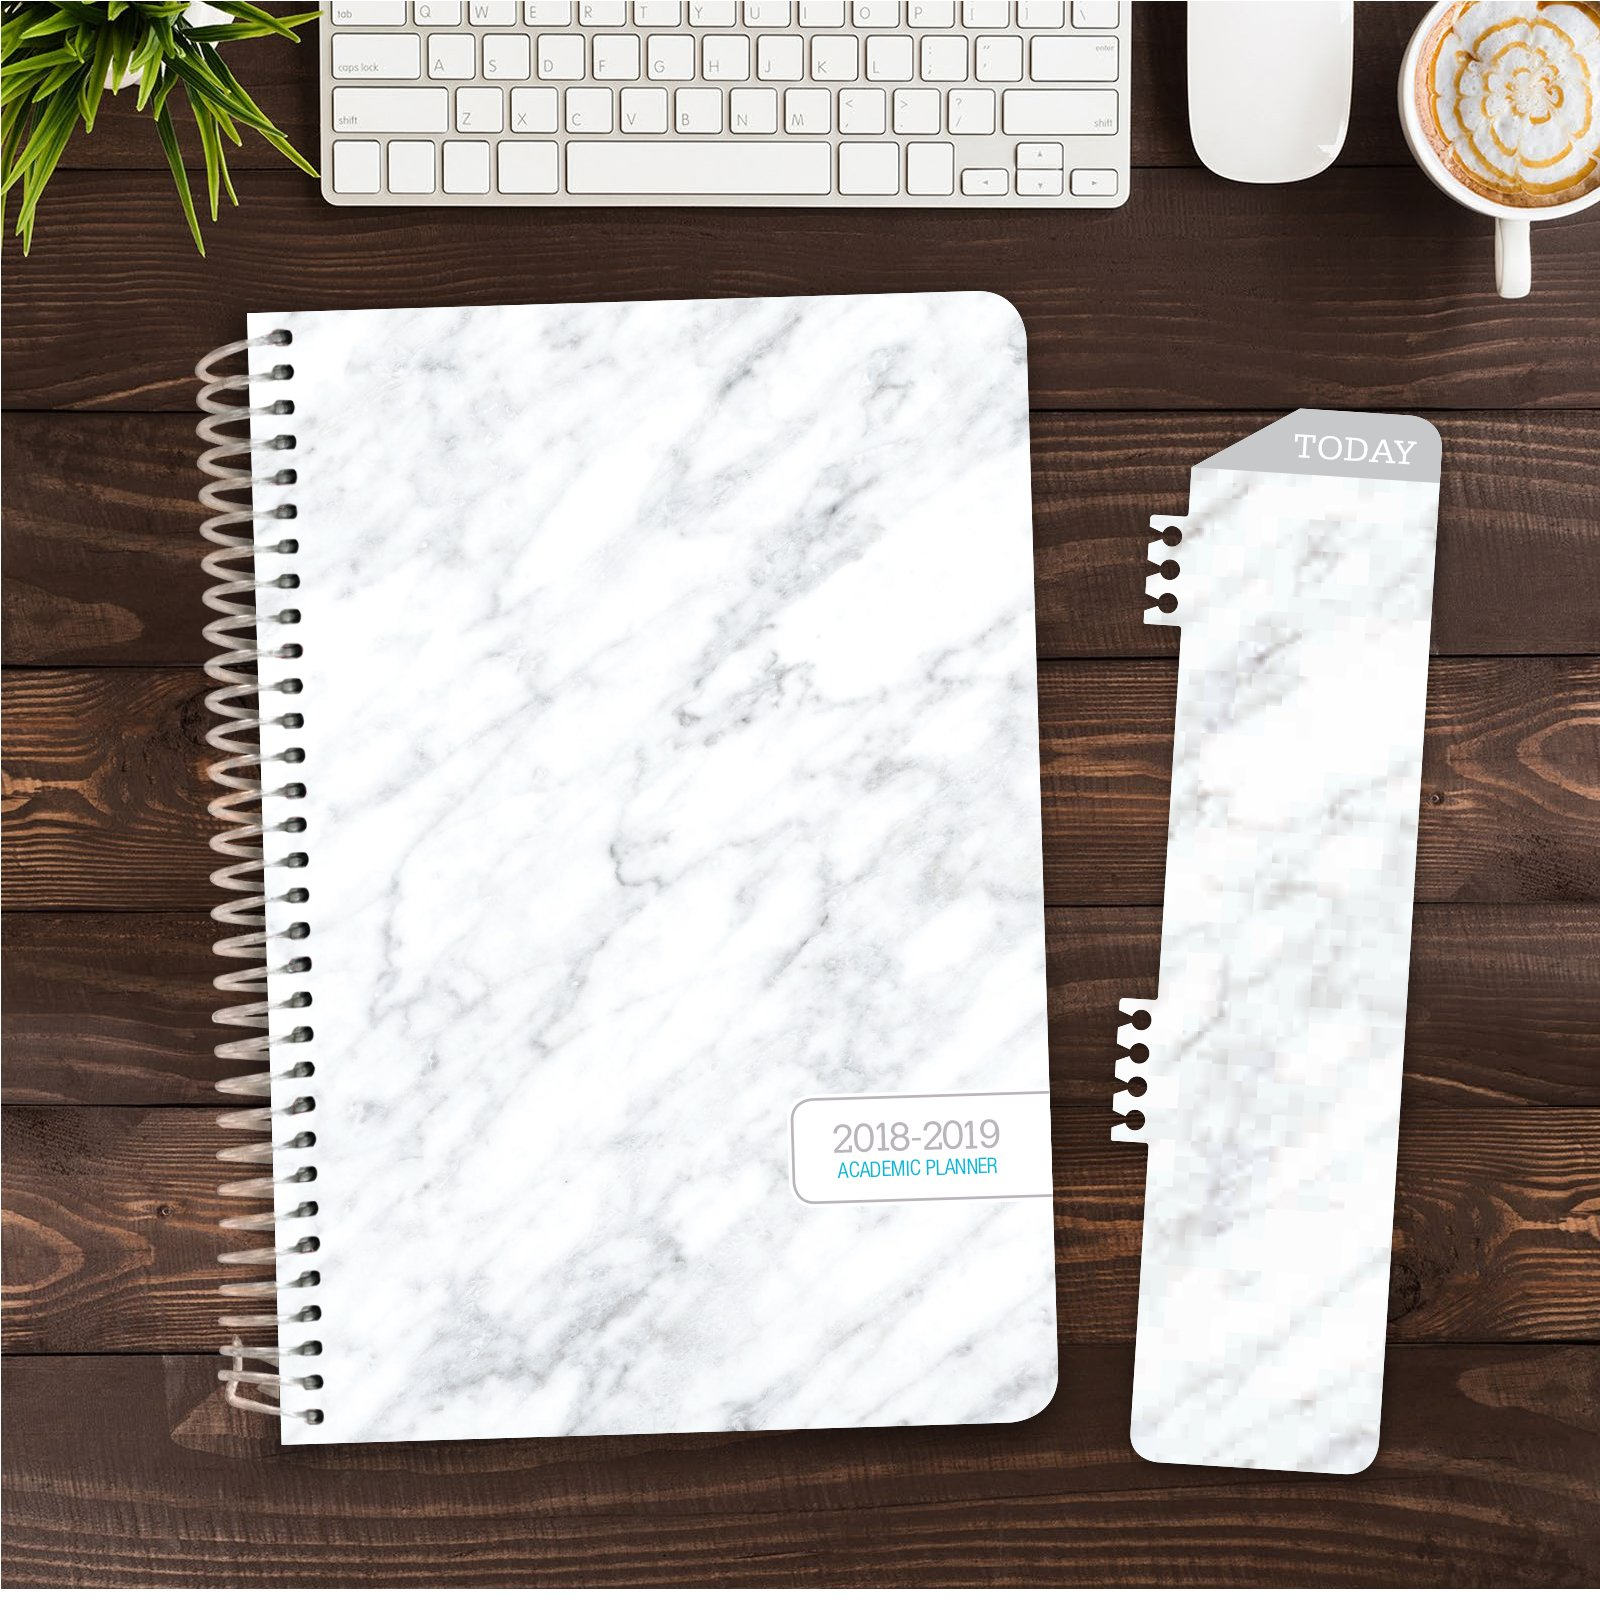 HARDCOVER Academic Year Planner 2018-2019 - 5.5''x8'' Daily Planner/Weekly Planner/Monthly Planner/Yearly Agenda. Bonus Bookmark (Grey Marble) by Global Printed Products (Image #1)